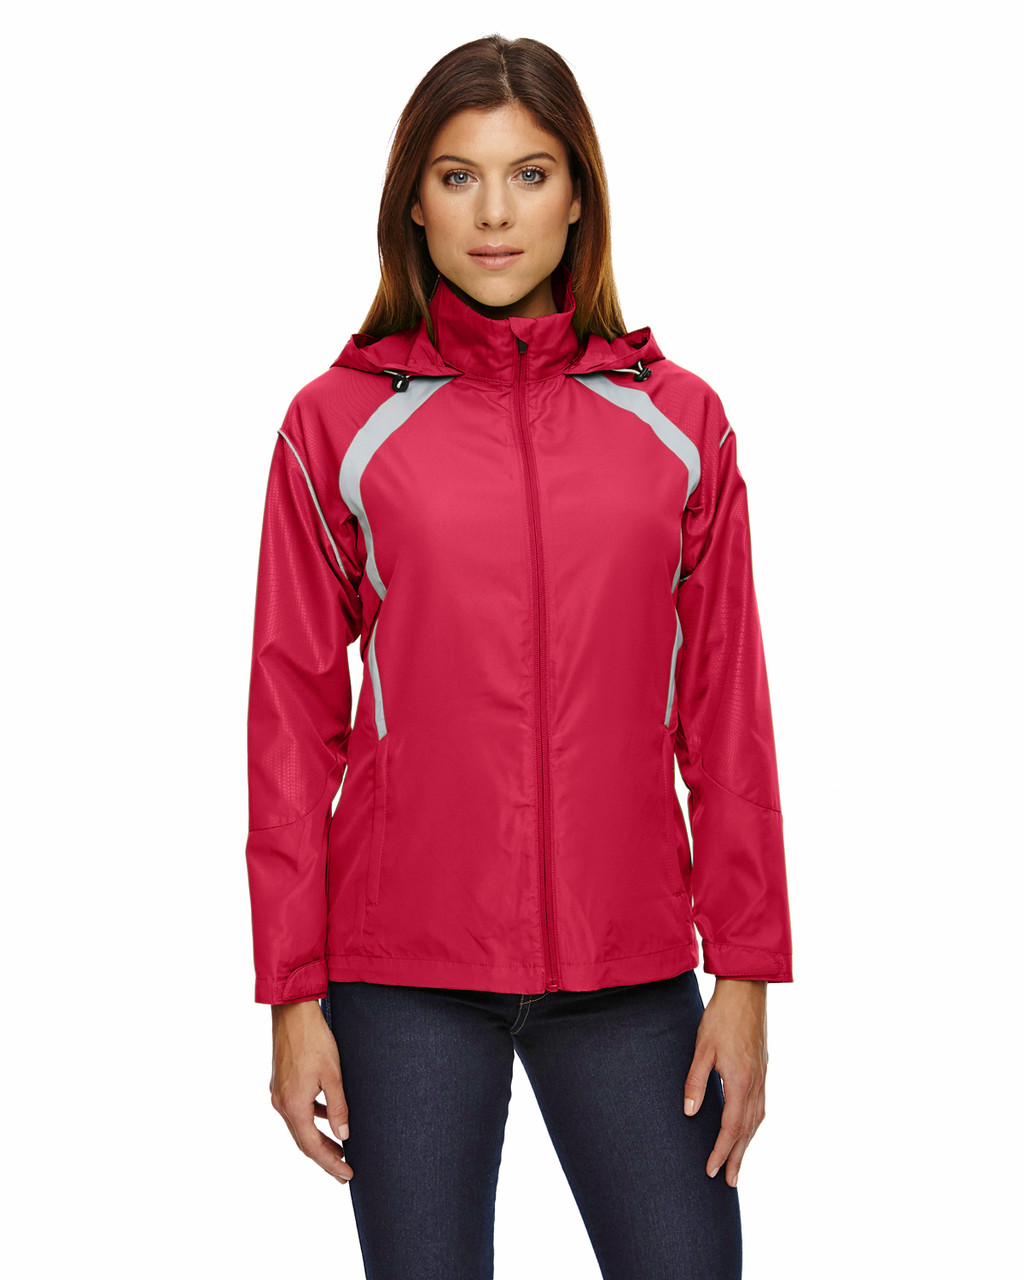 Olympic Red - 78168 North End Sirius Lightweight Jacket with Embossed Print | Blankclothing.ca